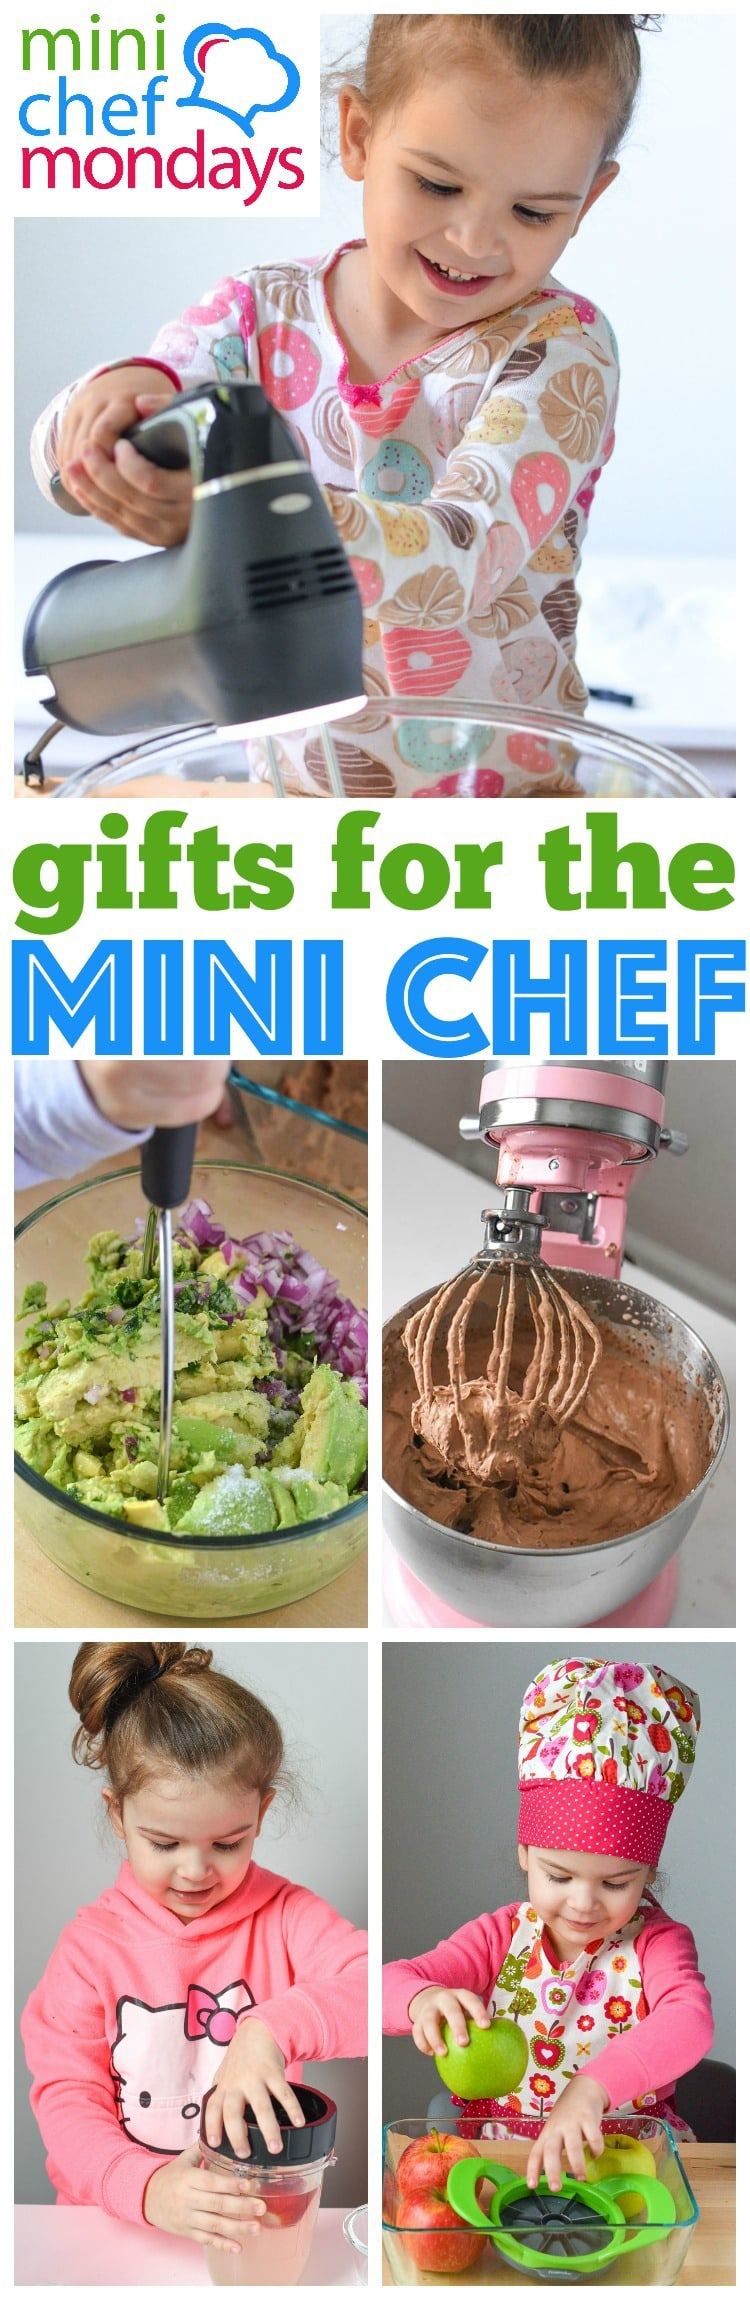 Our Top holiday picks, best gifts for mini chefs! Holiday shopping for kids presents to cook in the kitchen and of course Mini Chef Mondays!